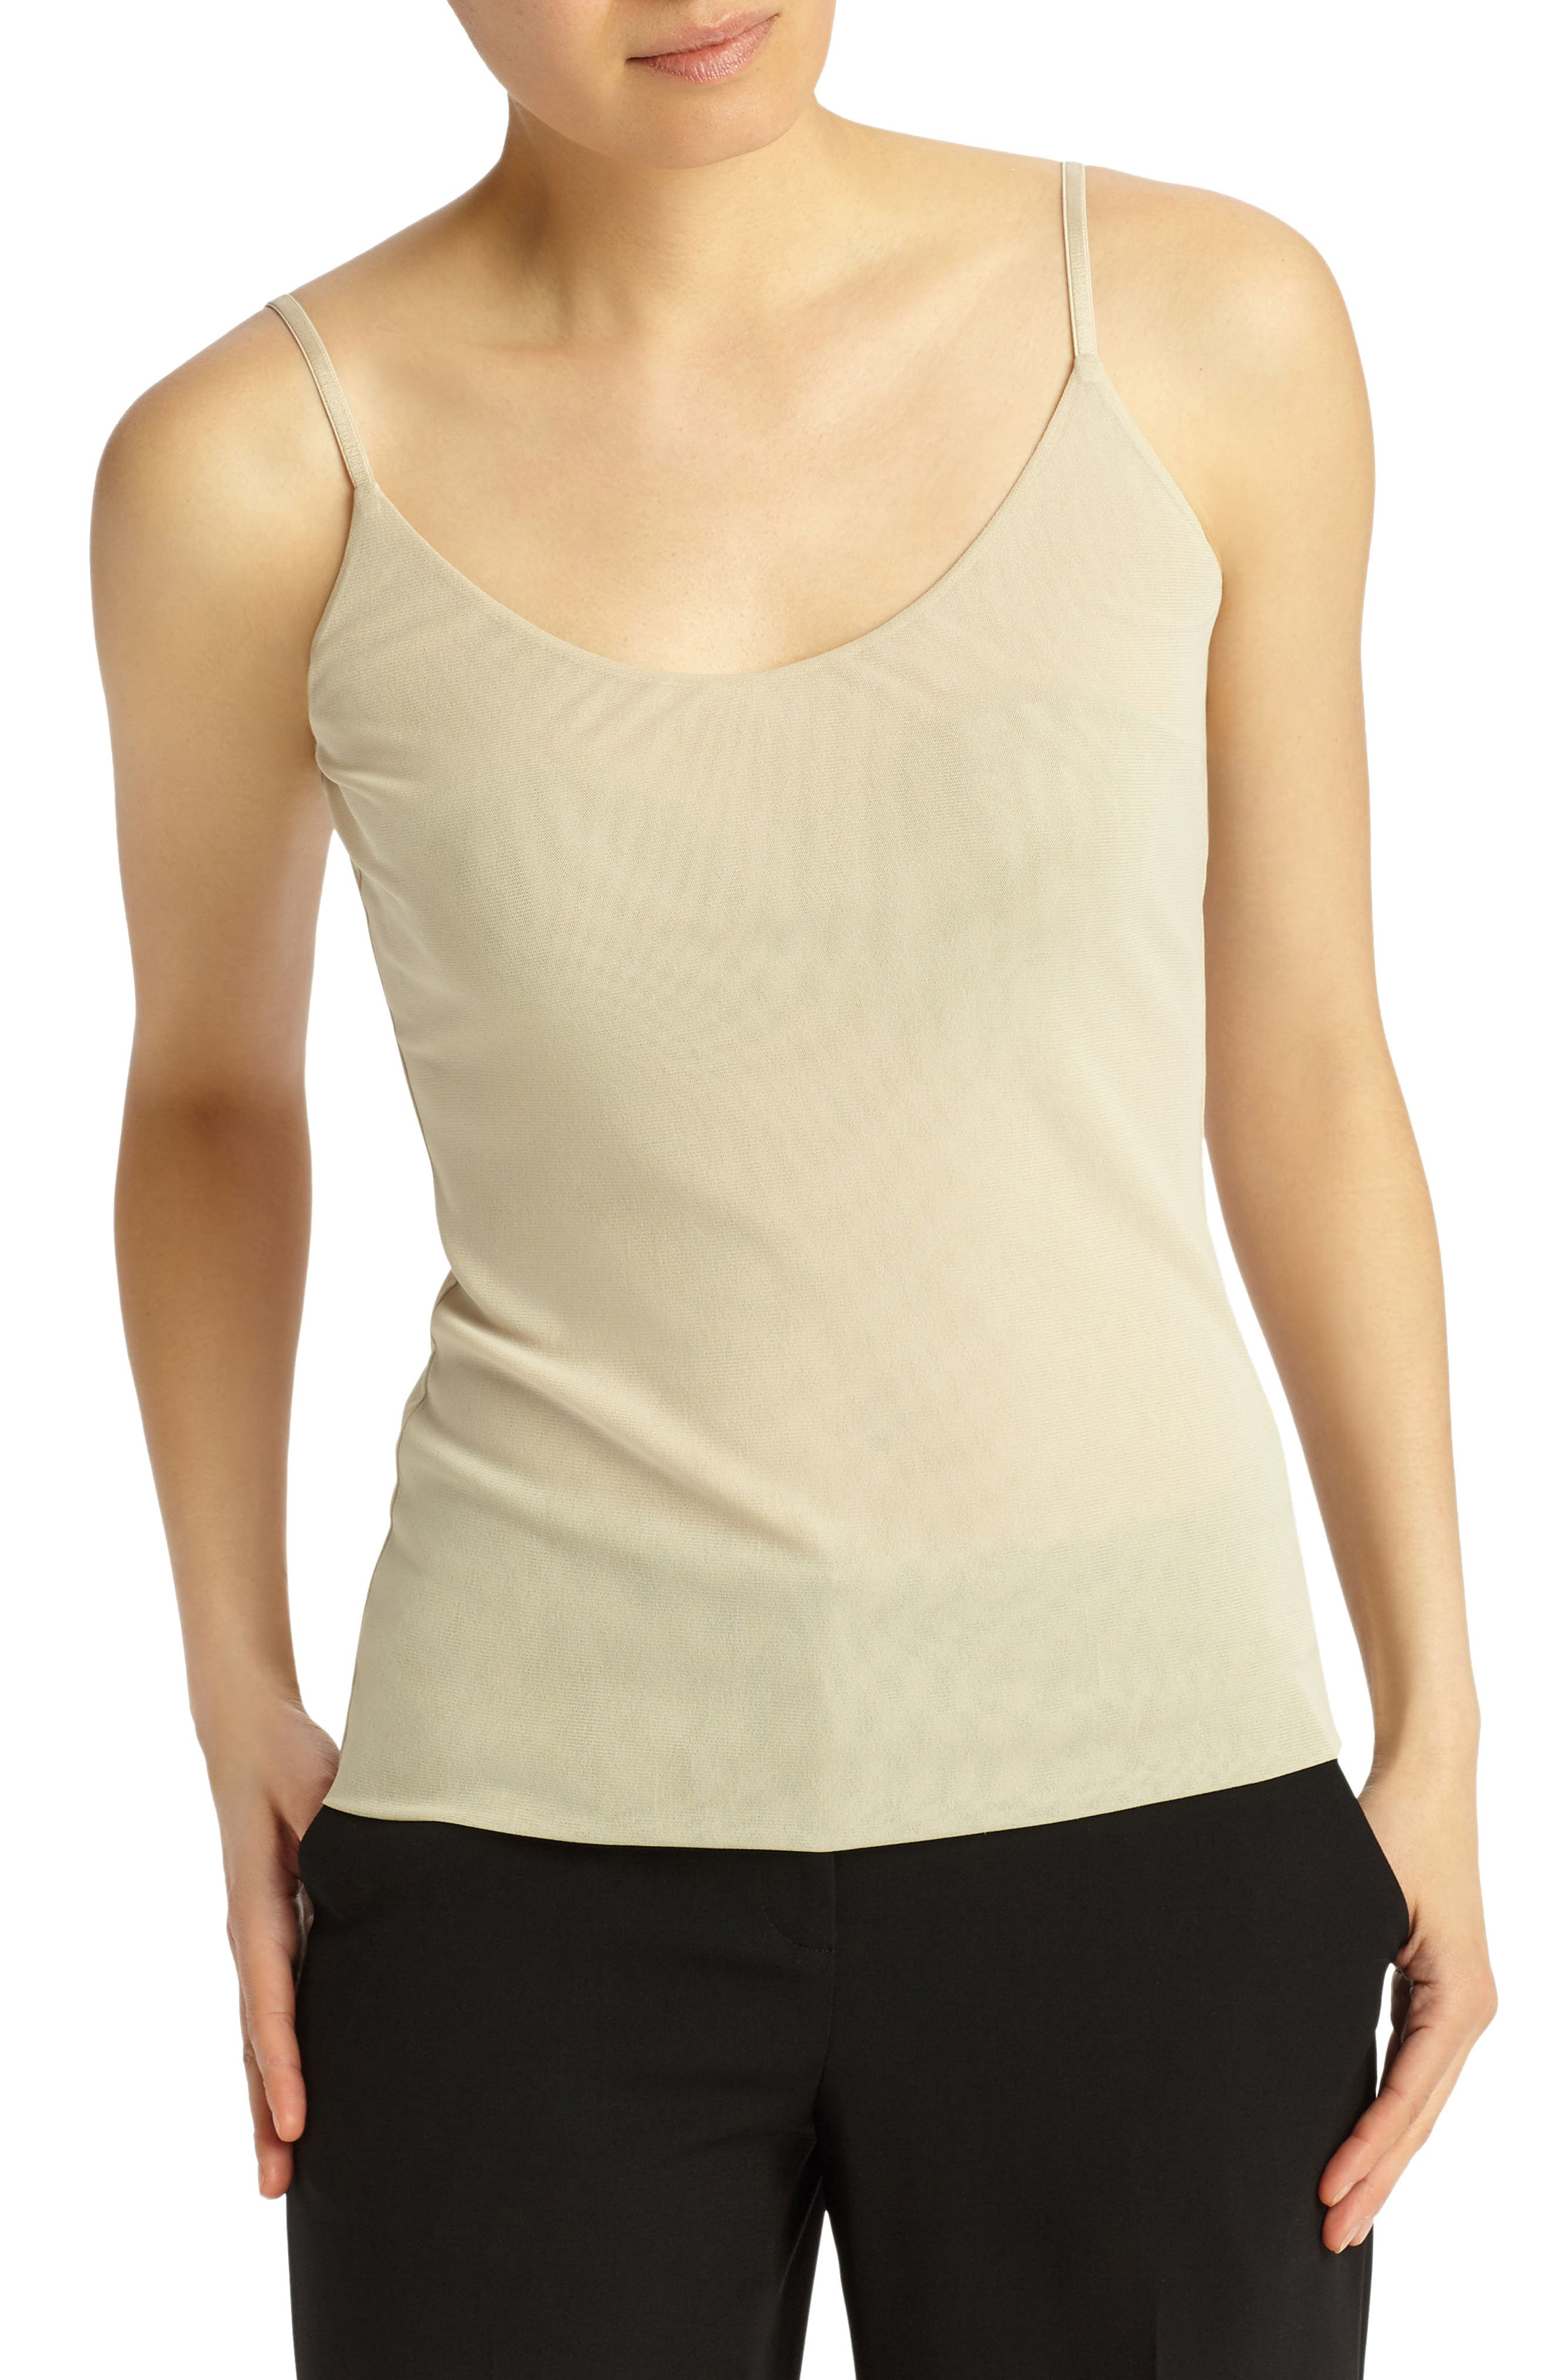 LAFAYETTE 148 NEW YORK,                             Mesh Jersey Camisole,                             Main thumbnail 1, color,                             KHAKI